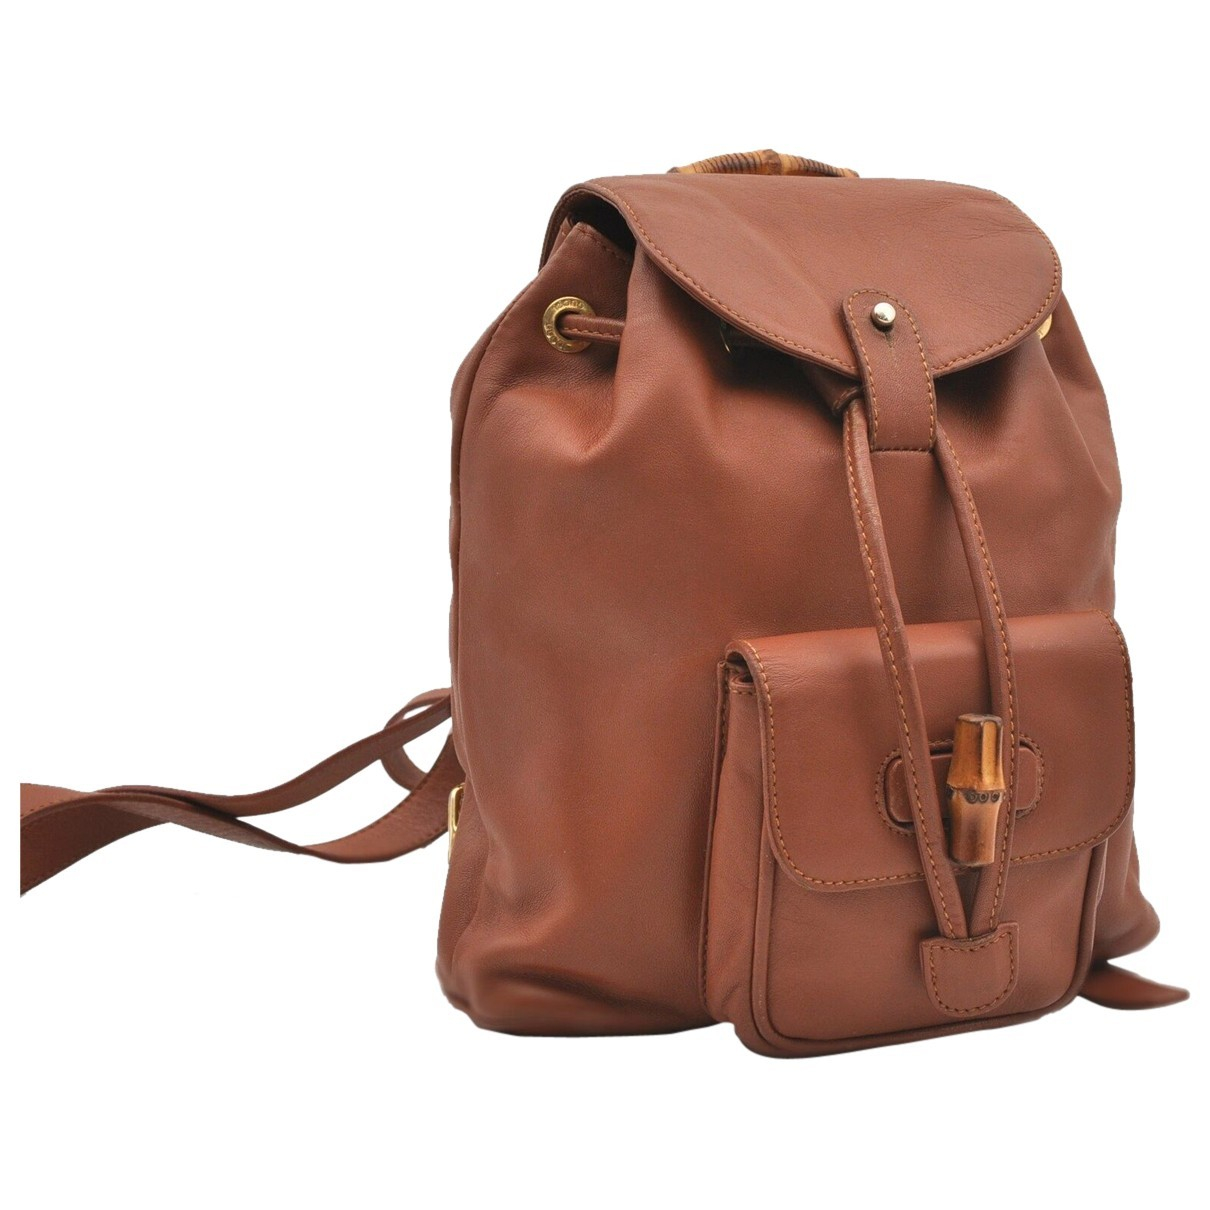 Gucci N Brown Leather backpack for Women N